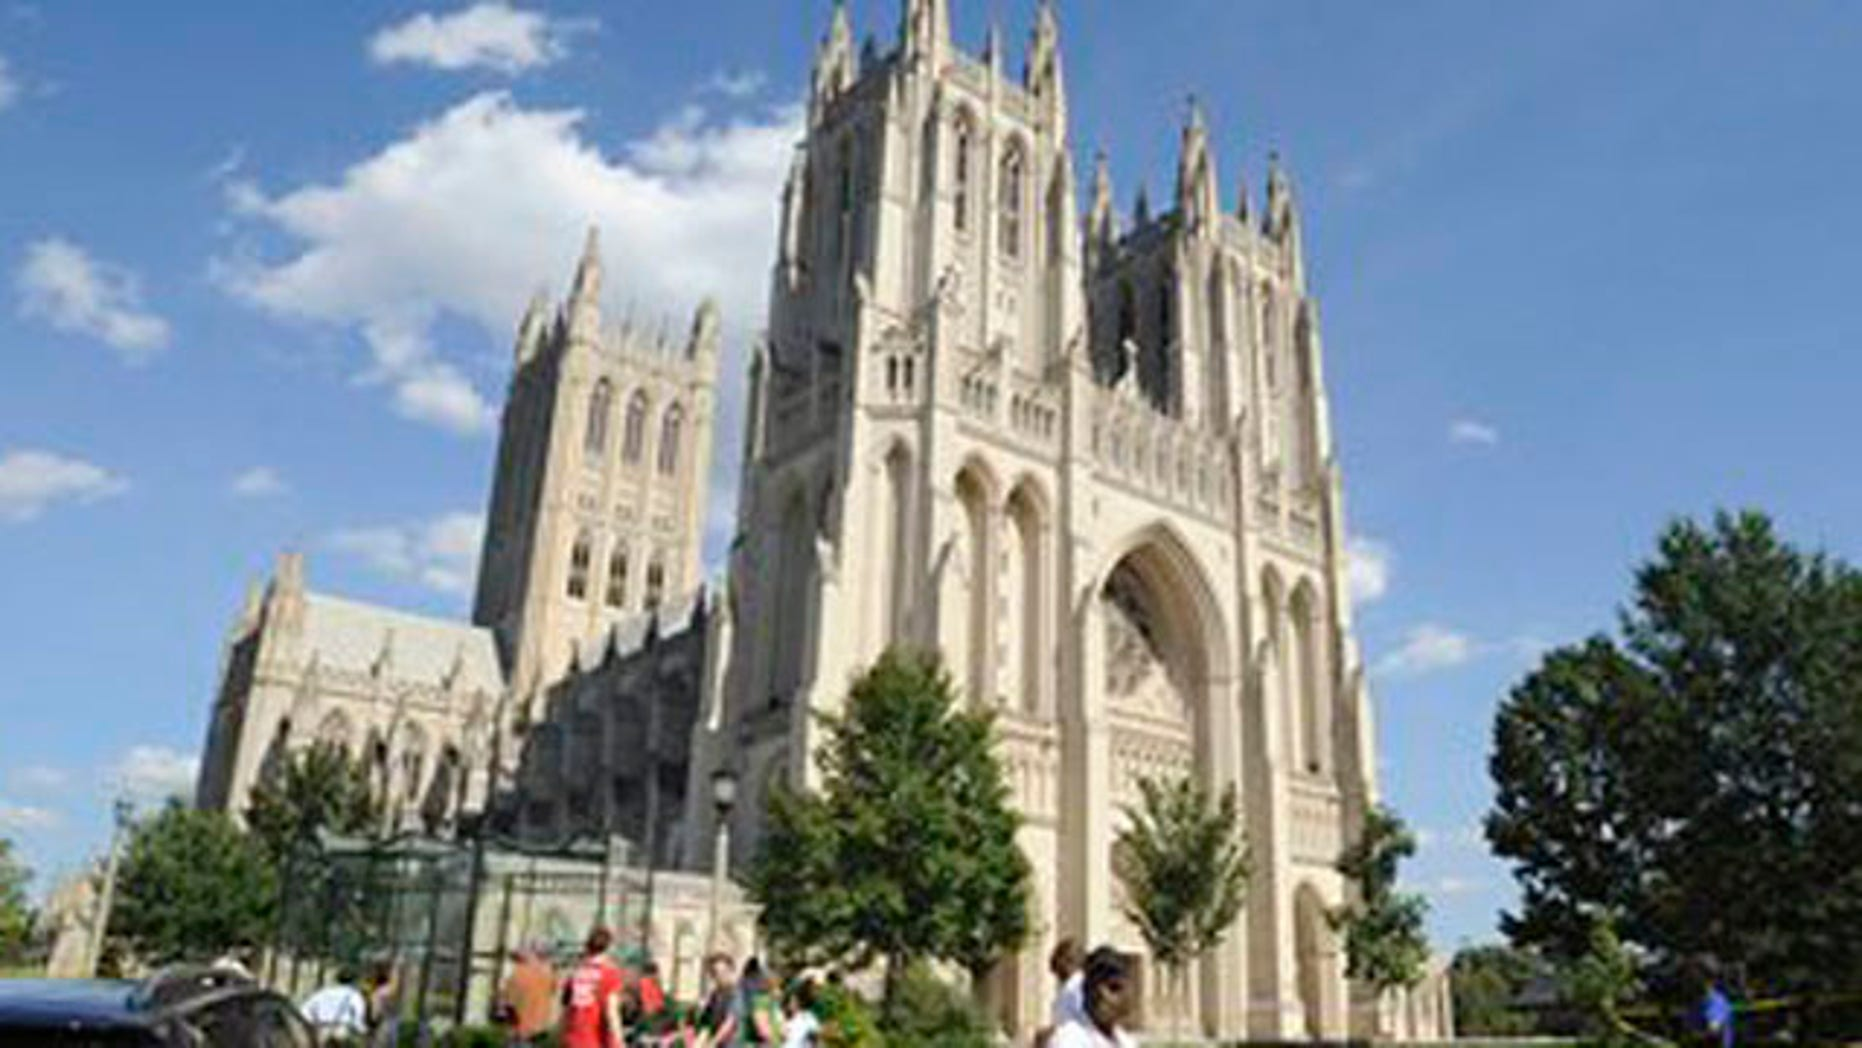 The National Cathedral is set to remove Confederate battle flag images from two stained glass windows.